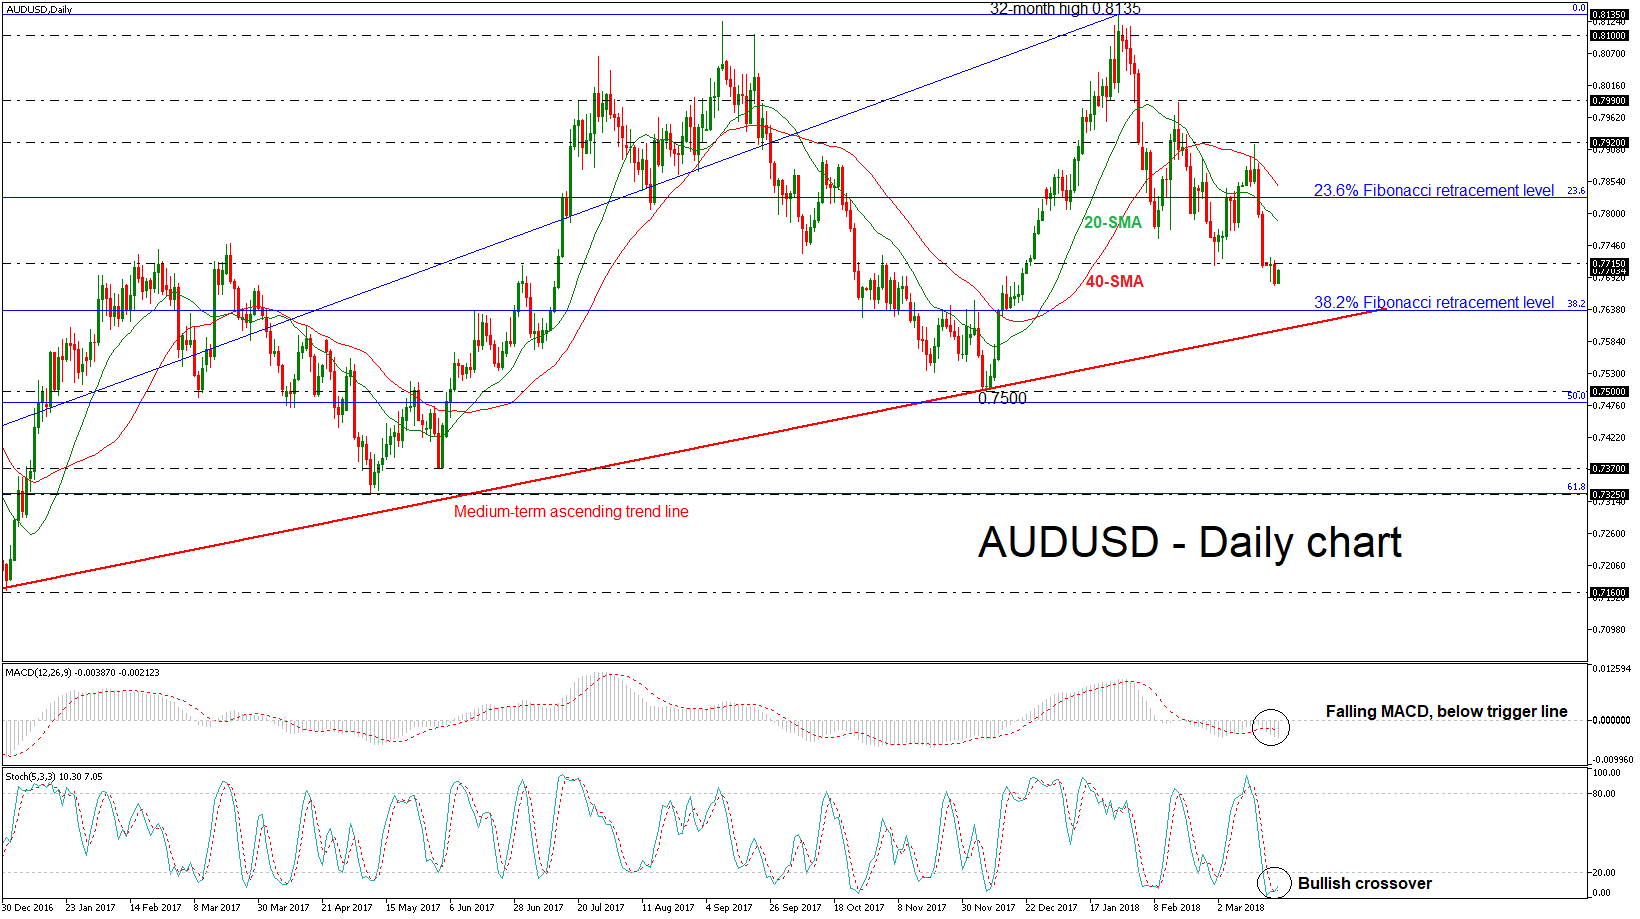 AUD/USD 21 MAR 2018 | EconAlerts